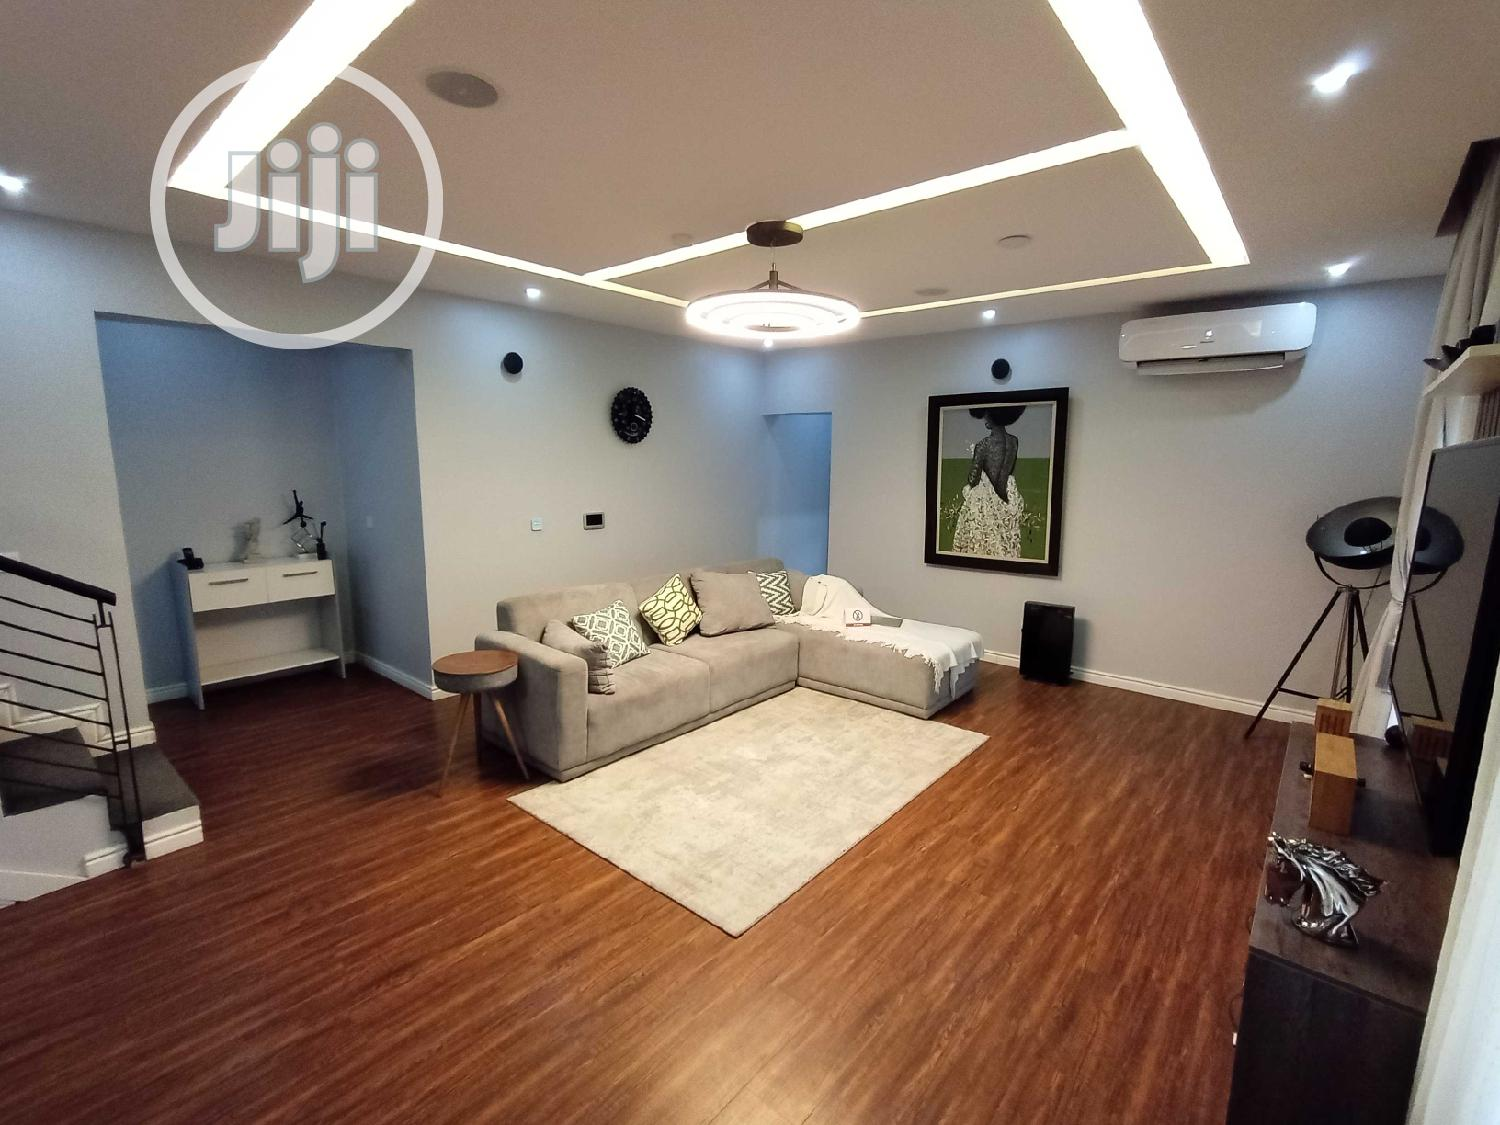 3 Bedroom Semi Detach Duplex - (Off-Plan Wit 18 Months Plan) | Houses & Apartments For Sale for sale in Ajah, Lagos State, Nigeria